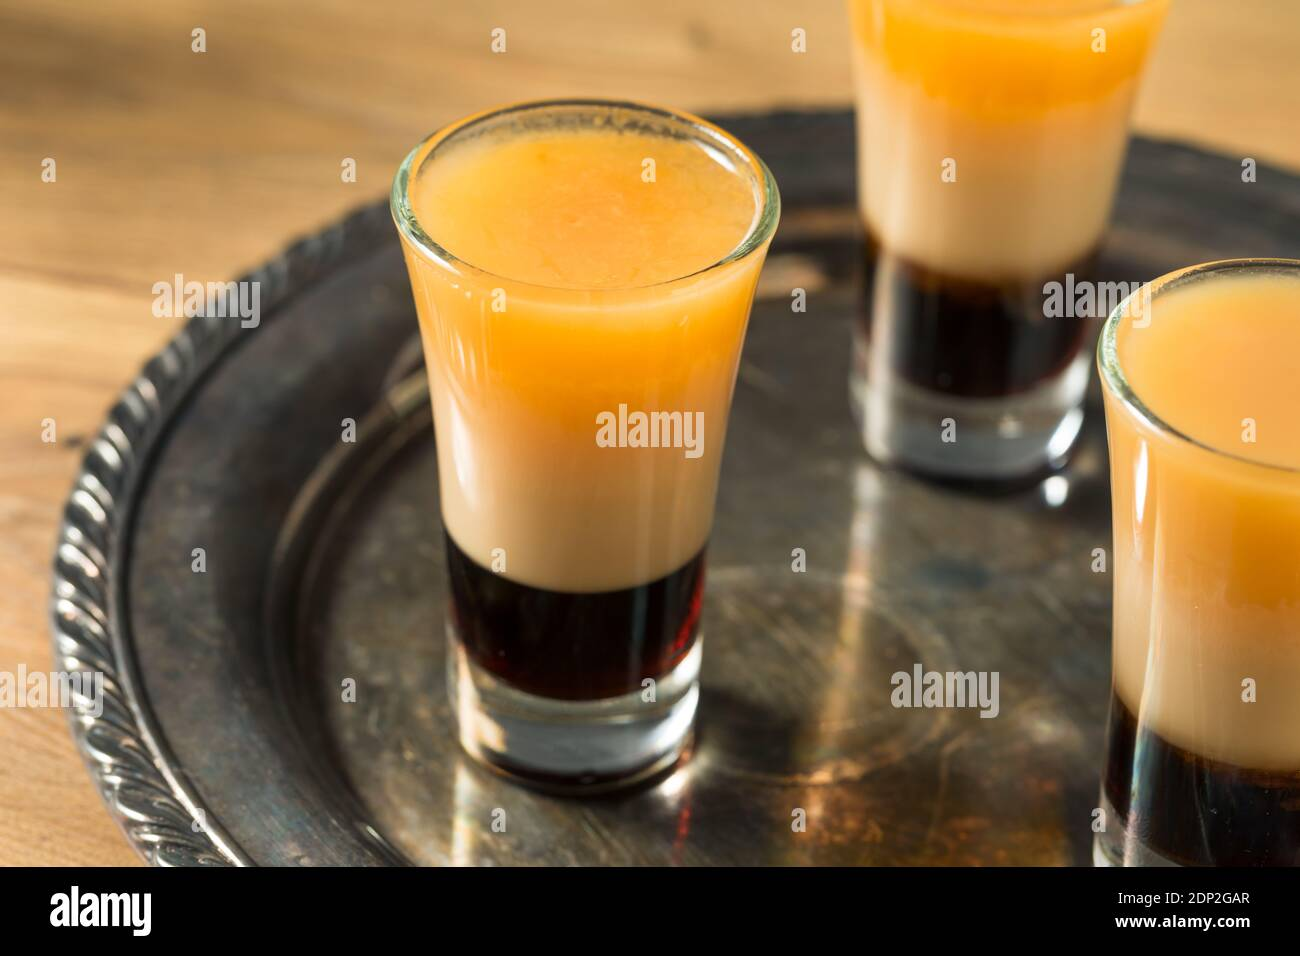 Boozy Layered B52 Shot Cocktail Ready to Drink Stock Photo